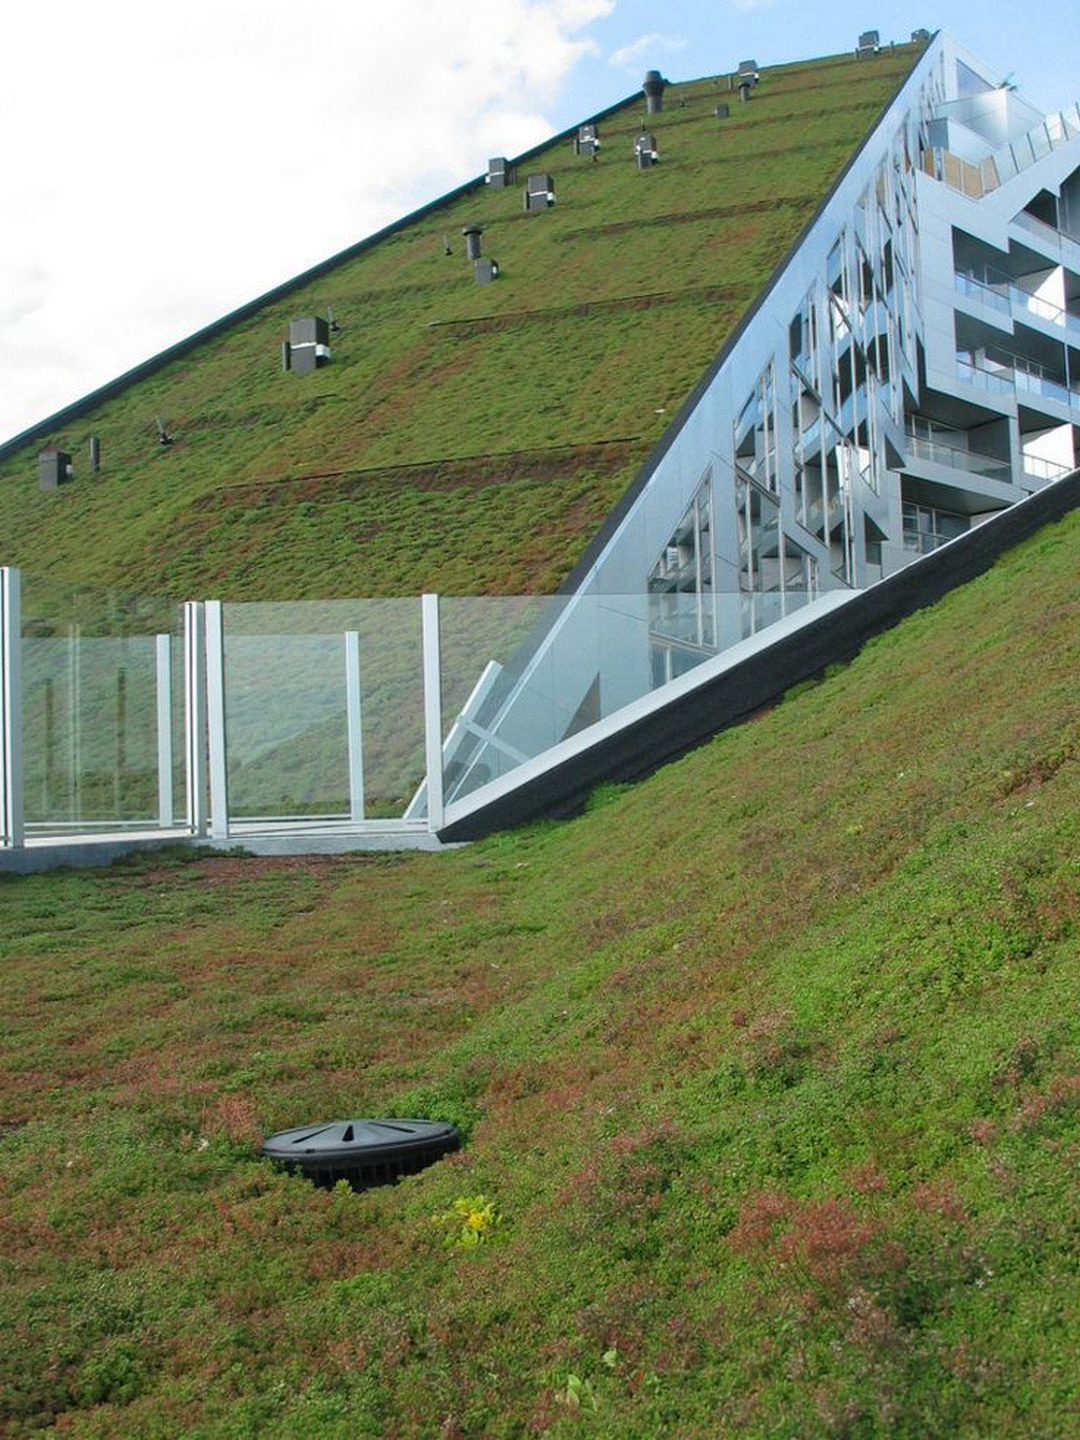 Casa Suspensa A Country House With Recycled Materials And Green Roof Green Roof Design Green Roof Green Facade